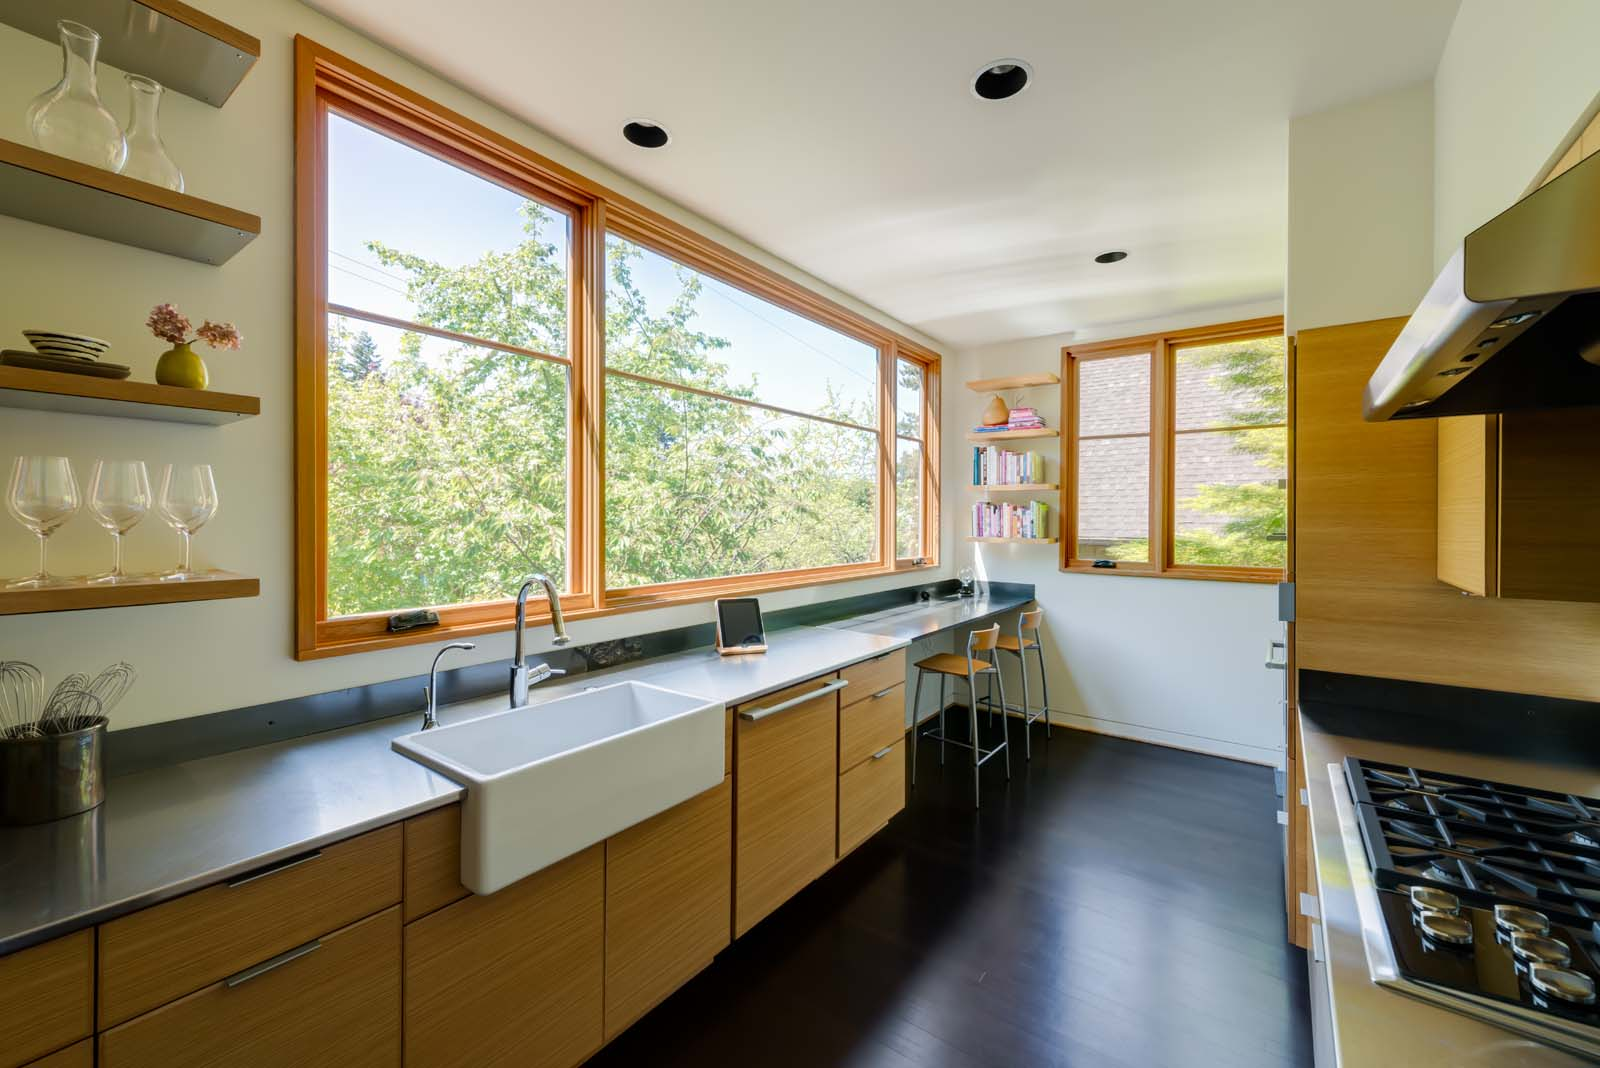 West Hills Modern_Interior_kitchen_1.jpg